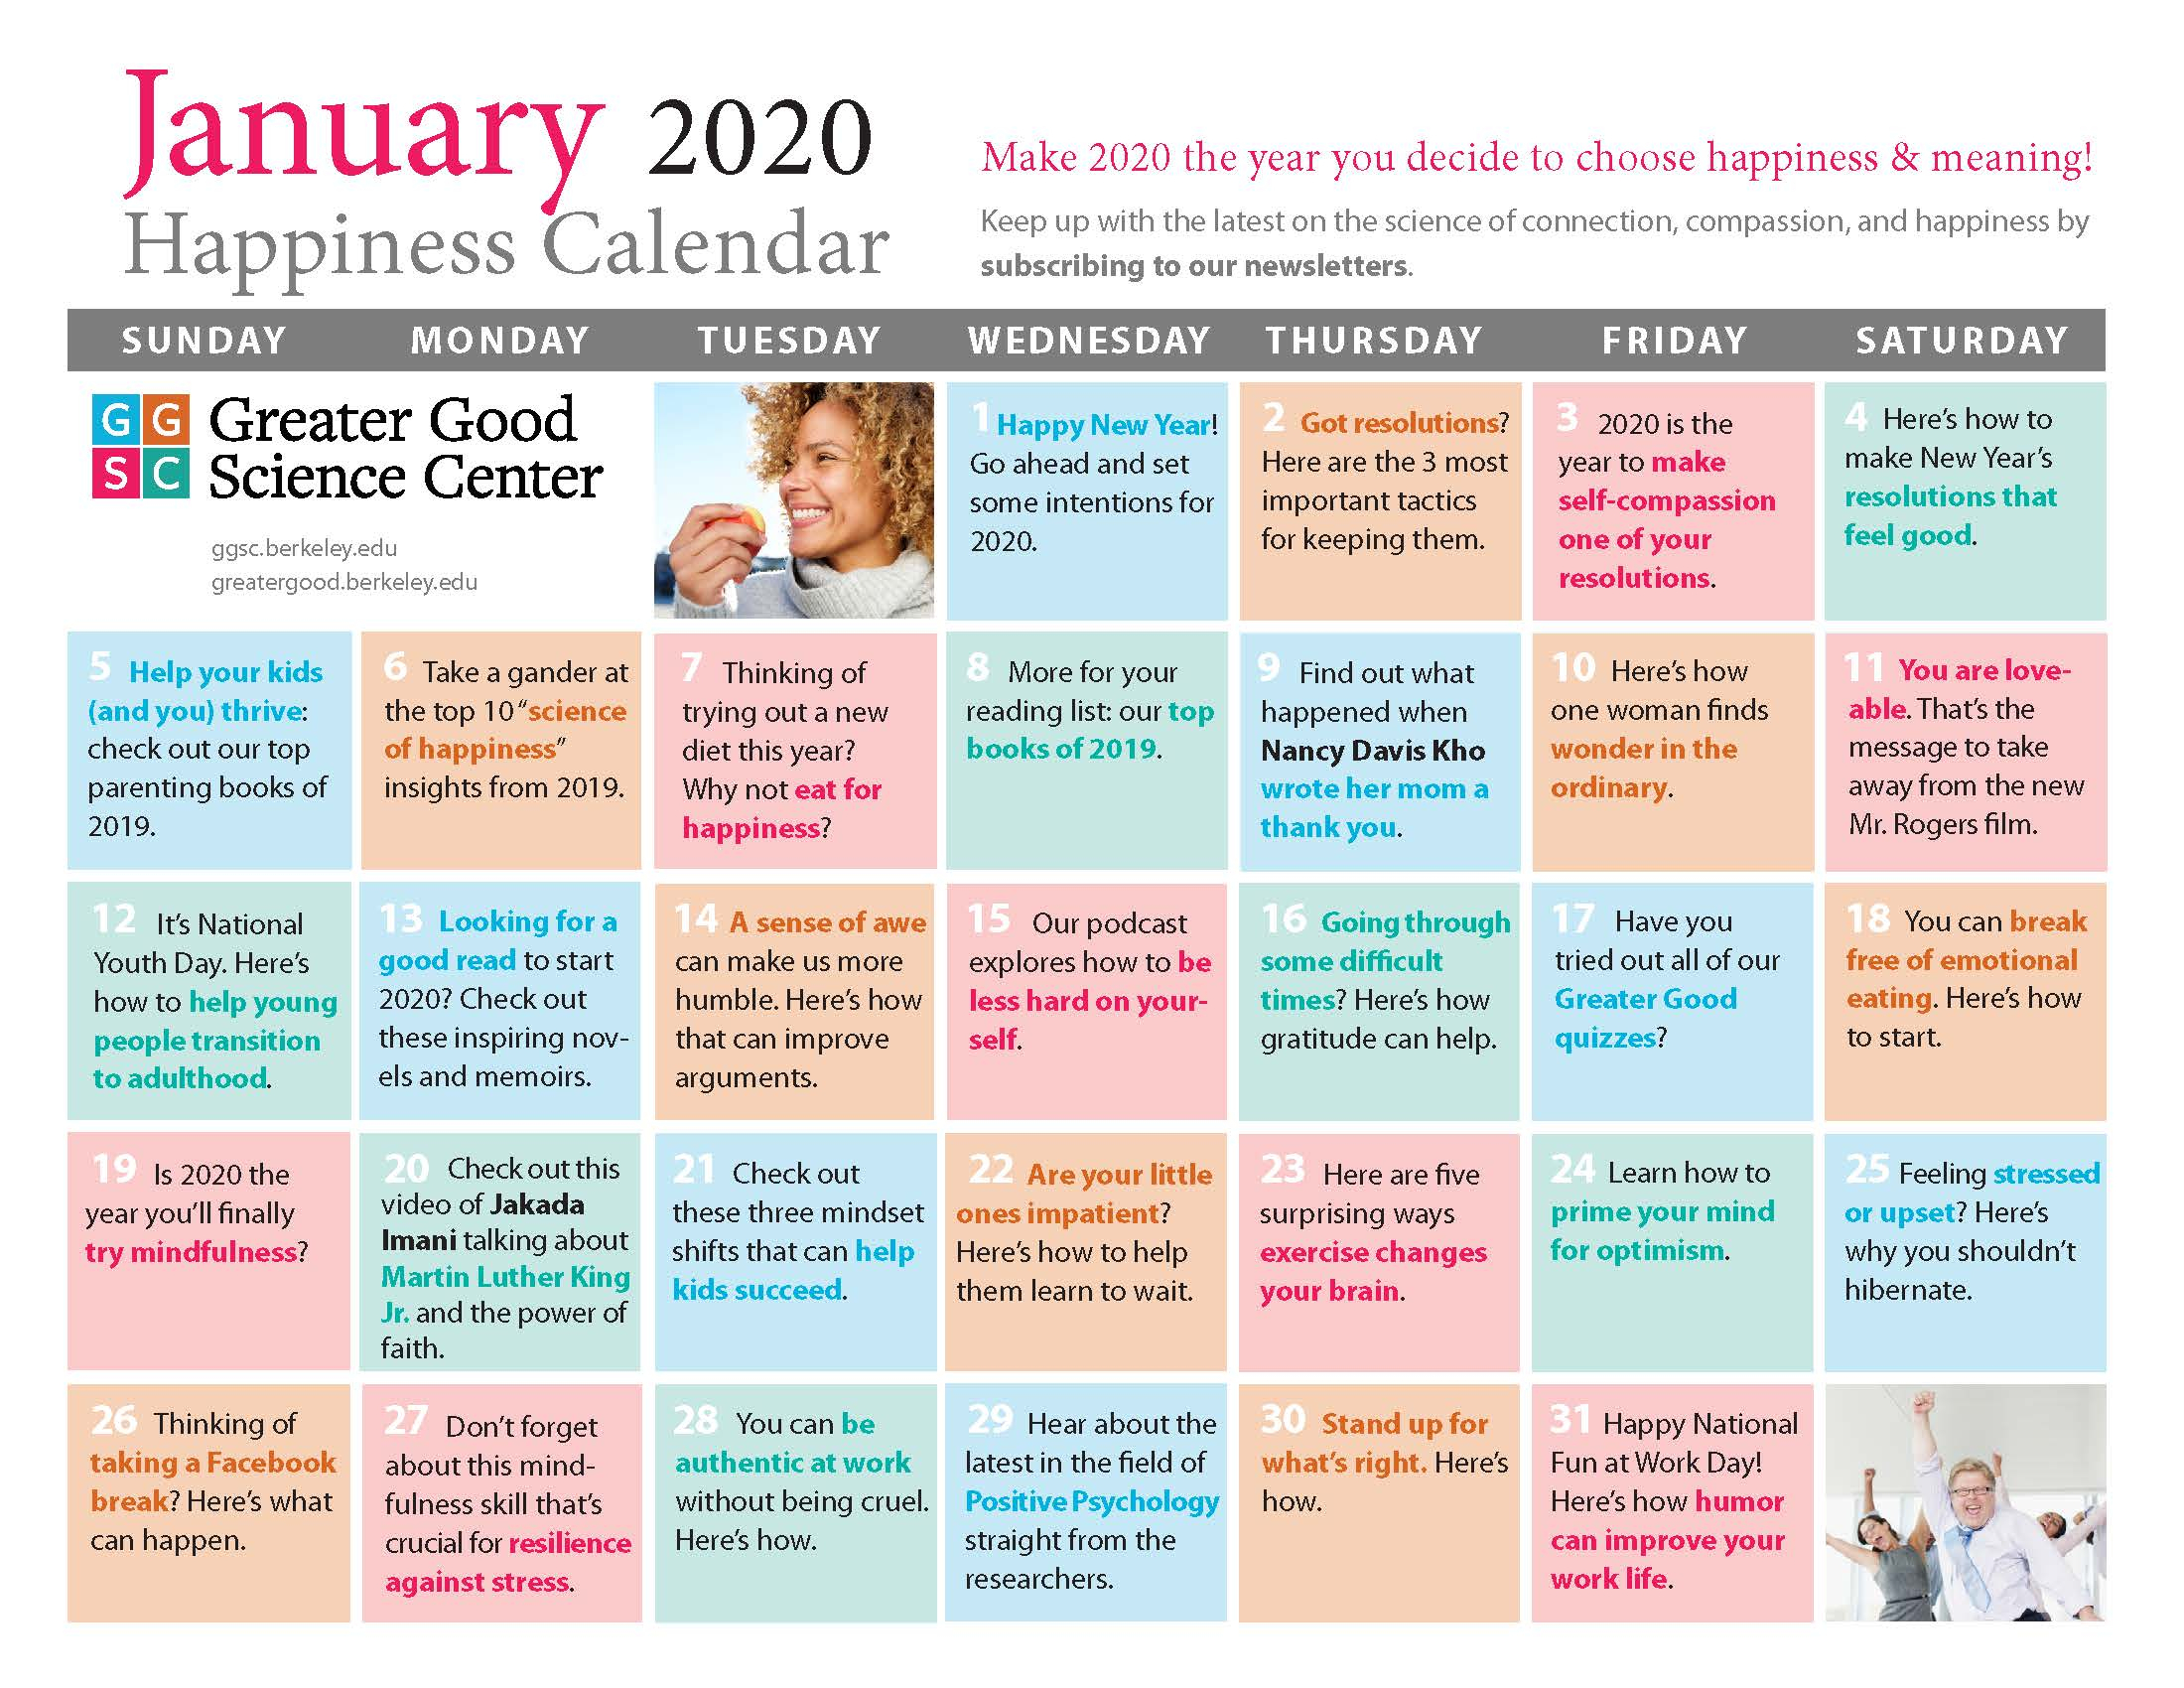 Your Happiness Calendar For January 2020 throughout Ucb Calendar 2020